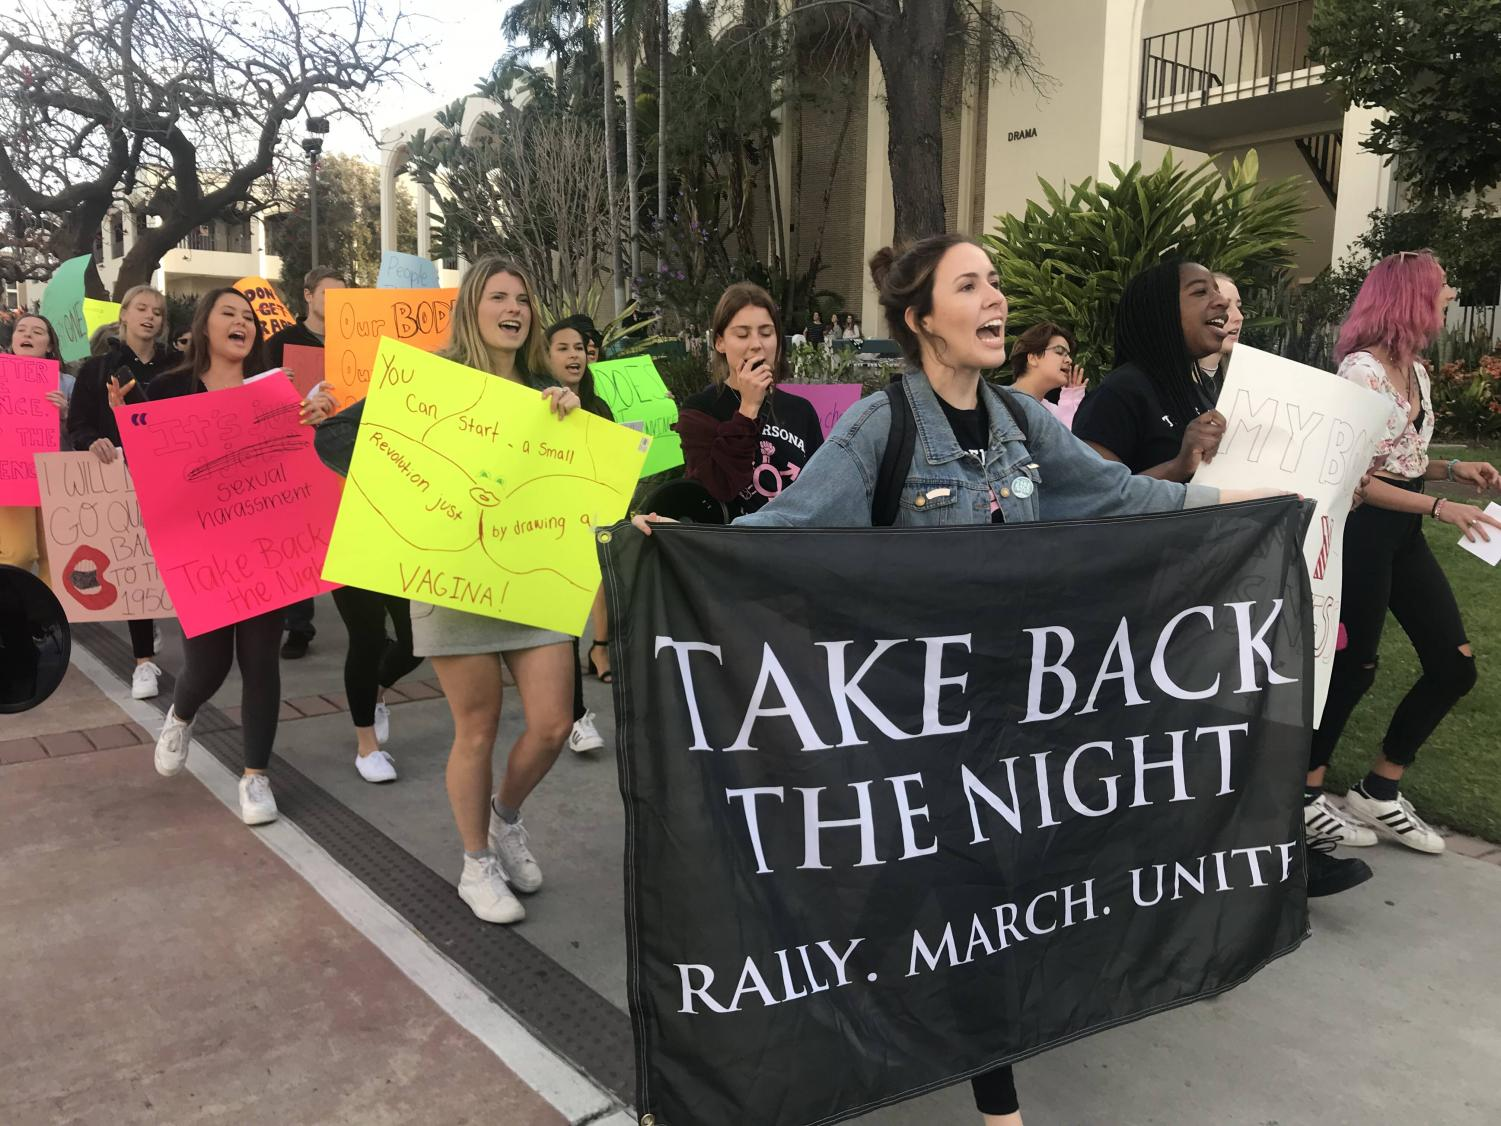 Womyn's Outreach Association President Shelby Rodich led the Take Back the Night march on campus.